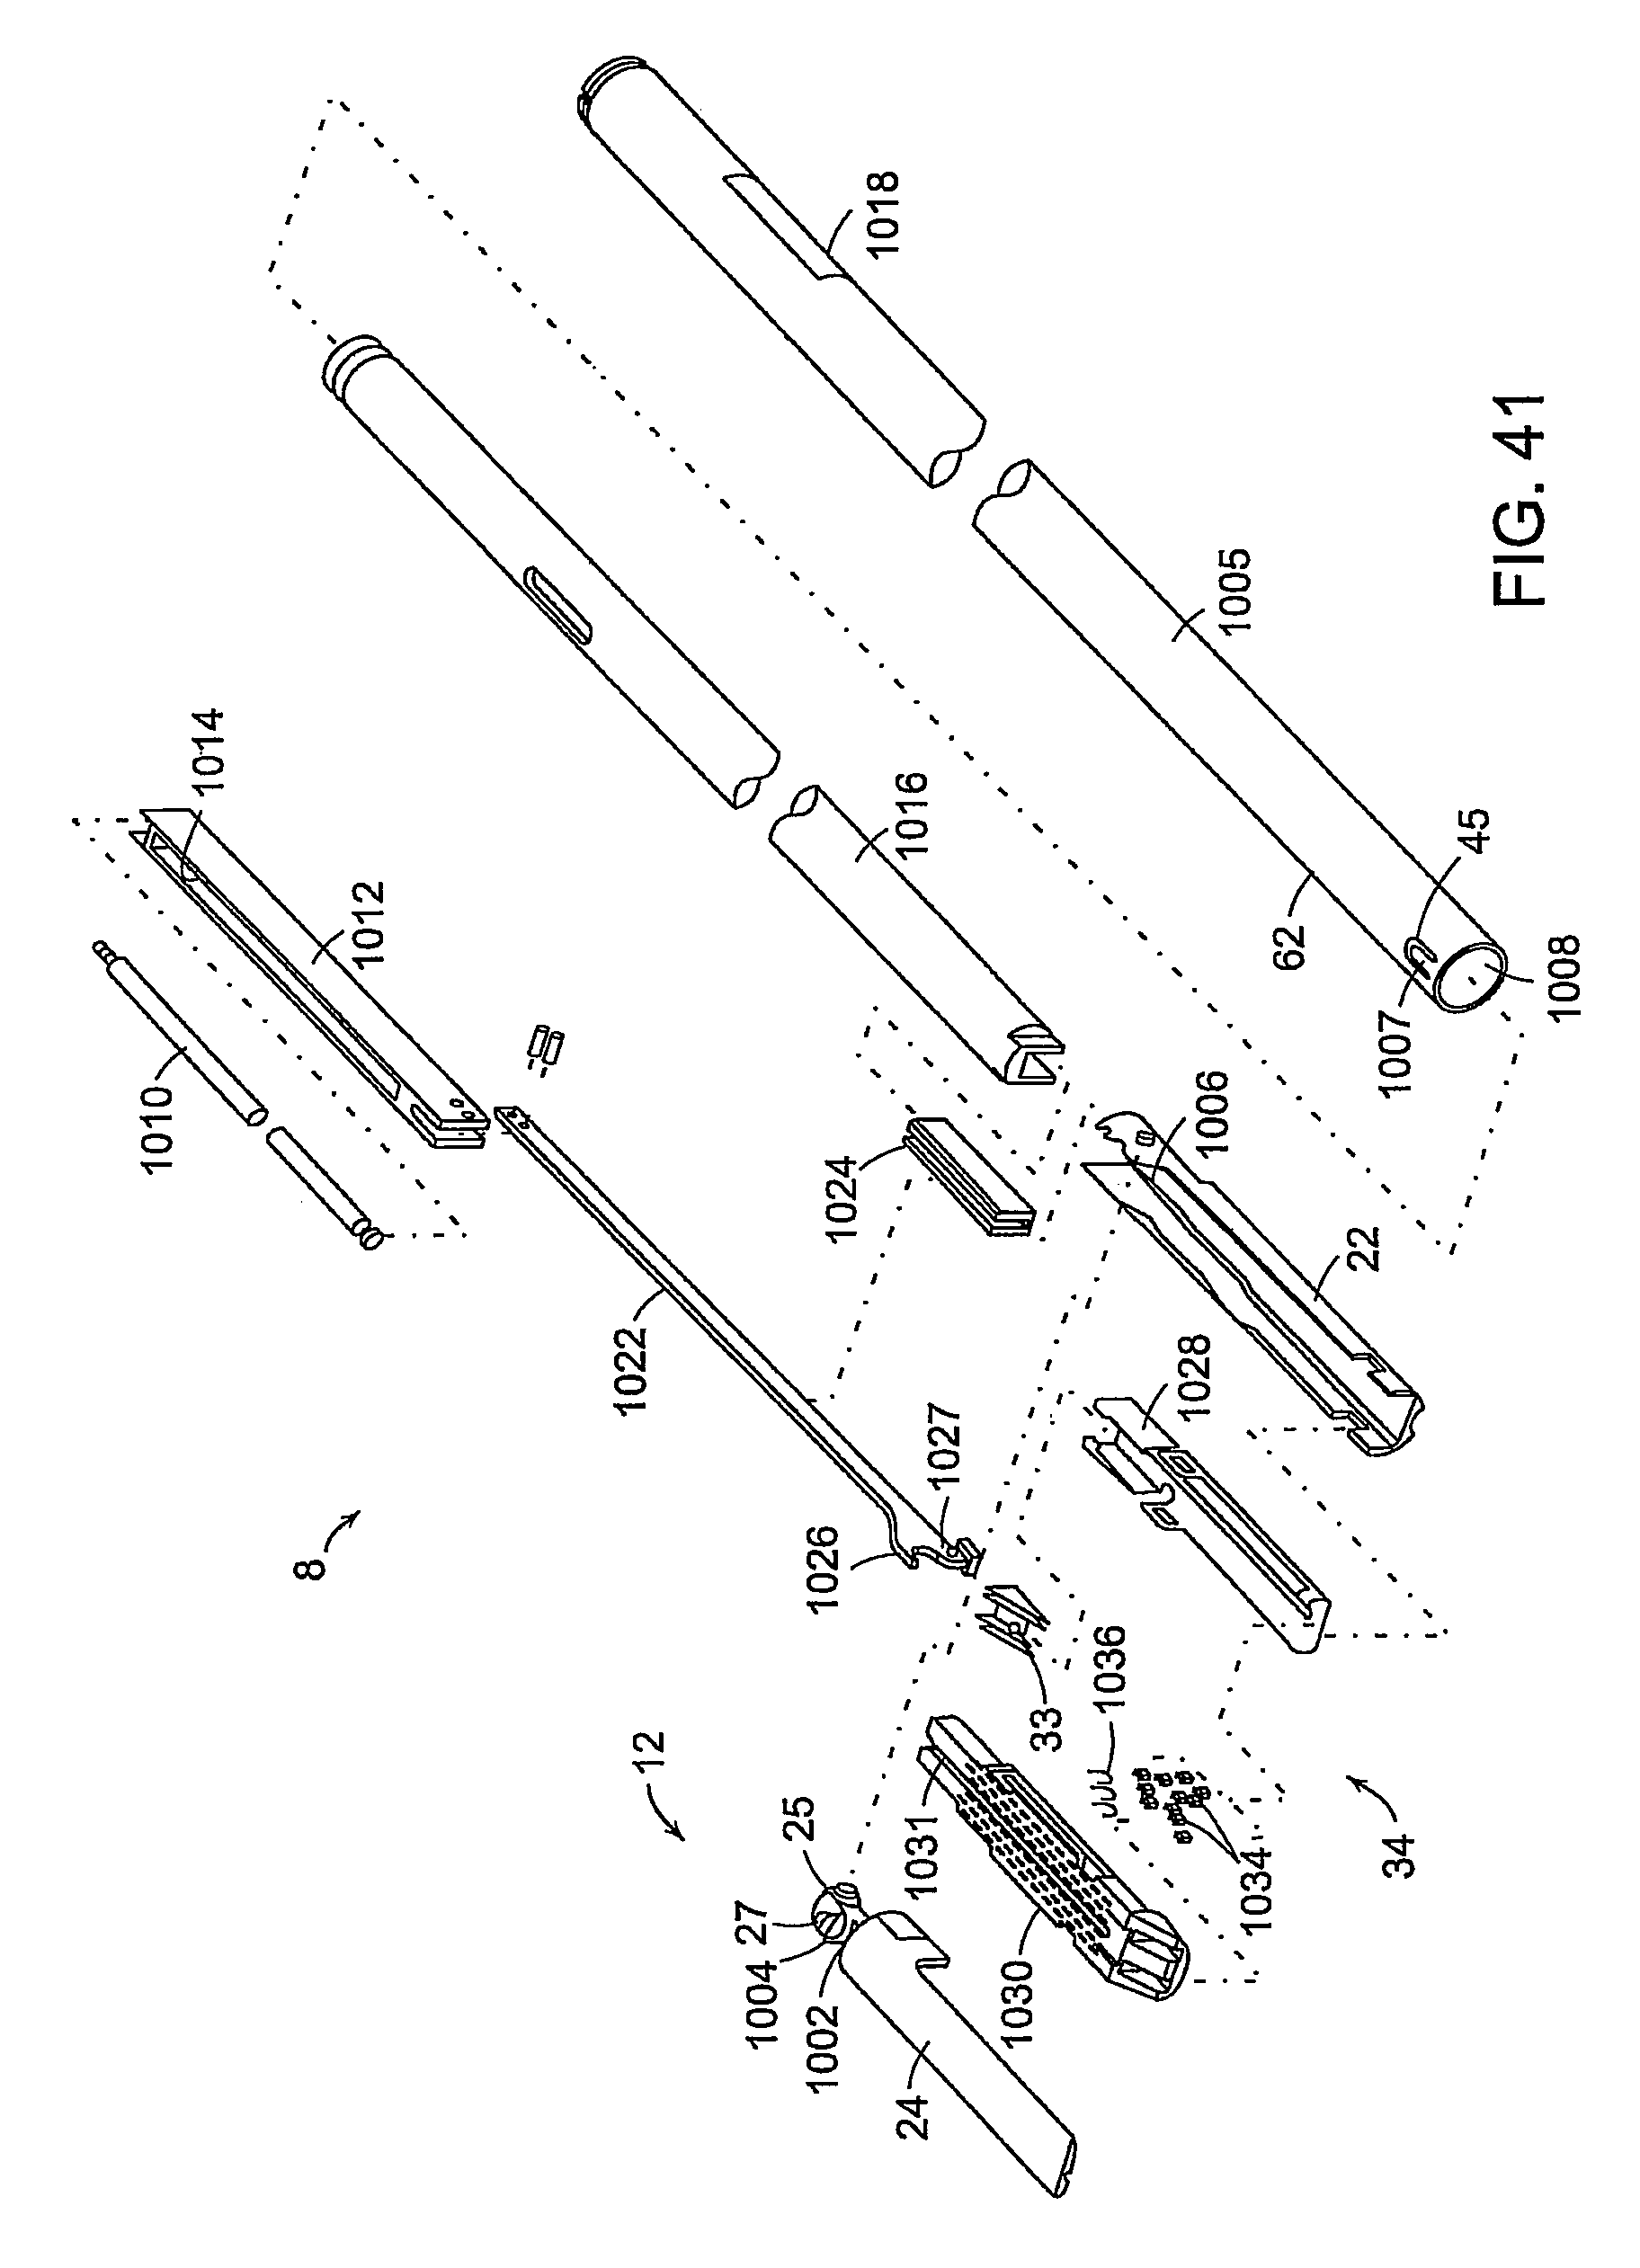 US B2 Accessing data stored in a memory of a surgical